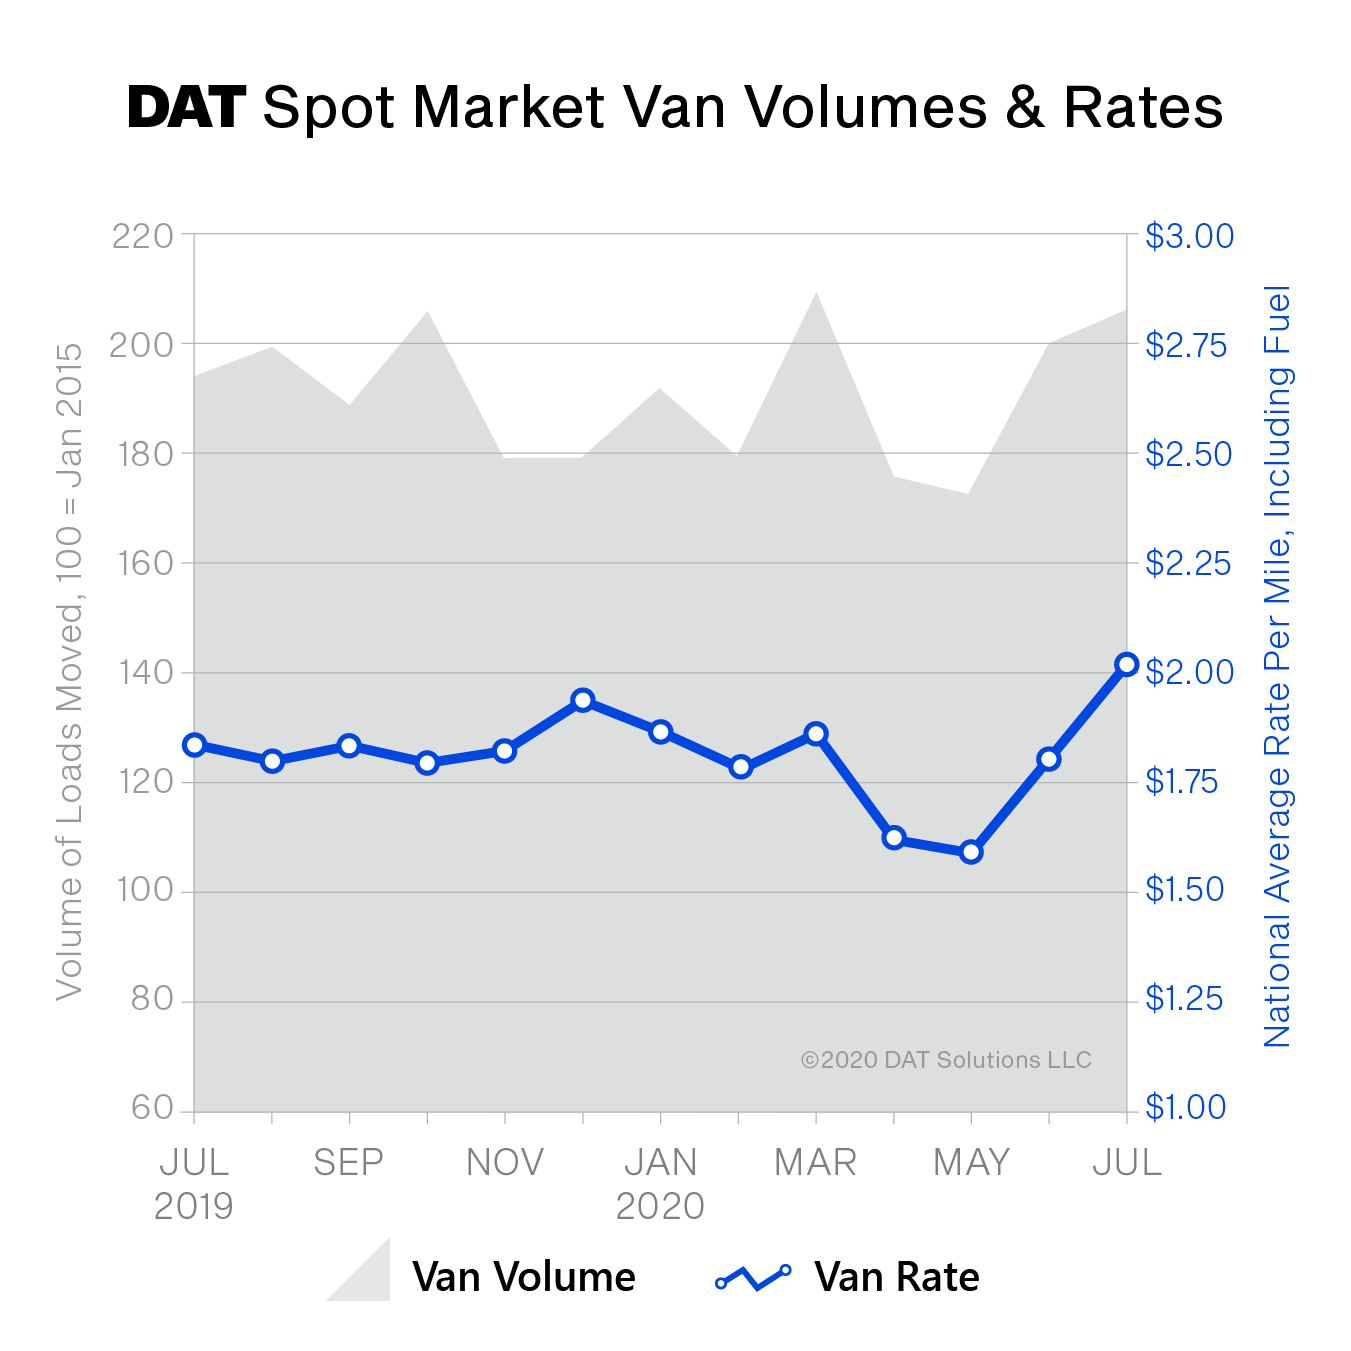 Spot van rates averaged $2.03 per mile nationally in July, up 23 cents compared to June and 19 cents higher versus July 2019. The van load-to-truck ratio was 4.4, meaning there were 4.4 available loads for every truck on the DAT network.